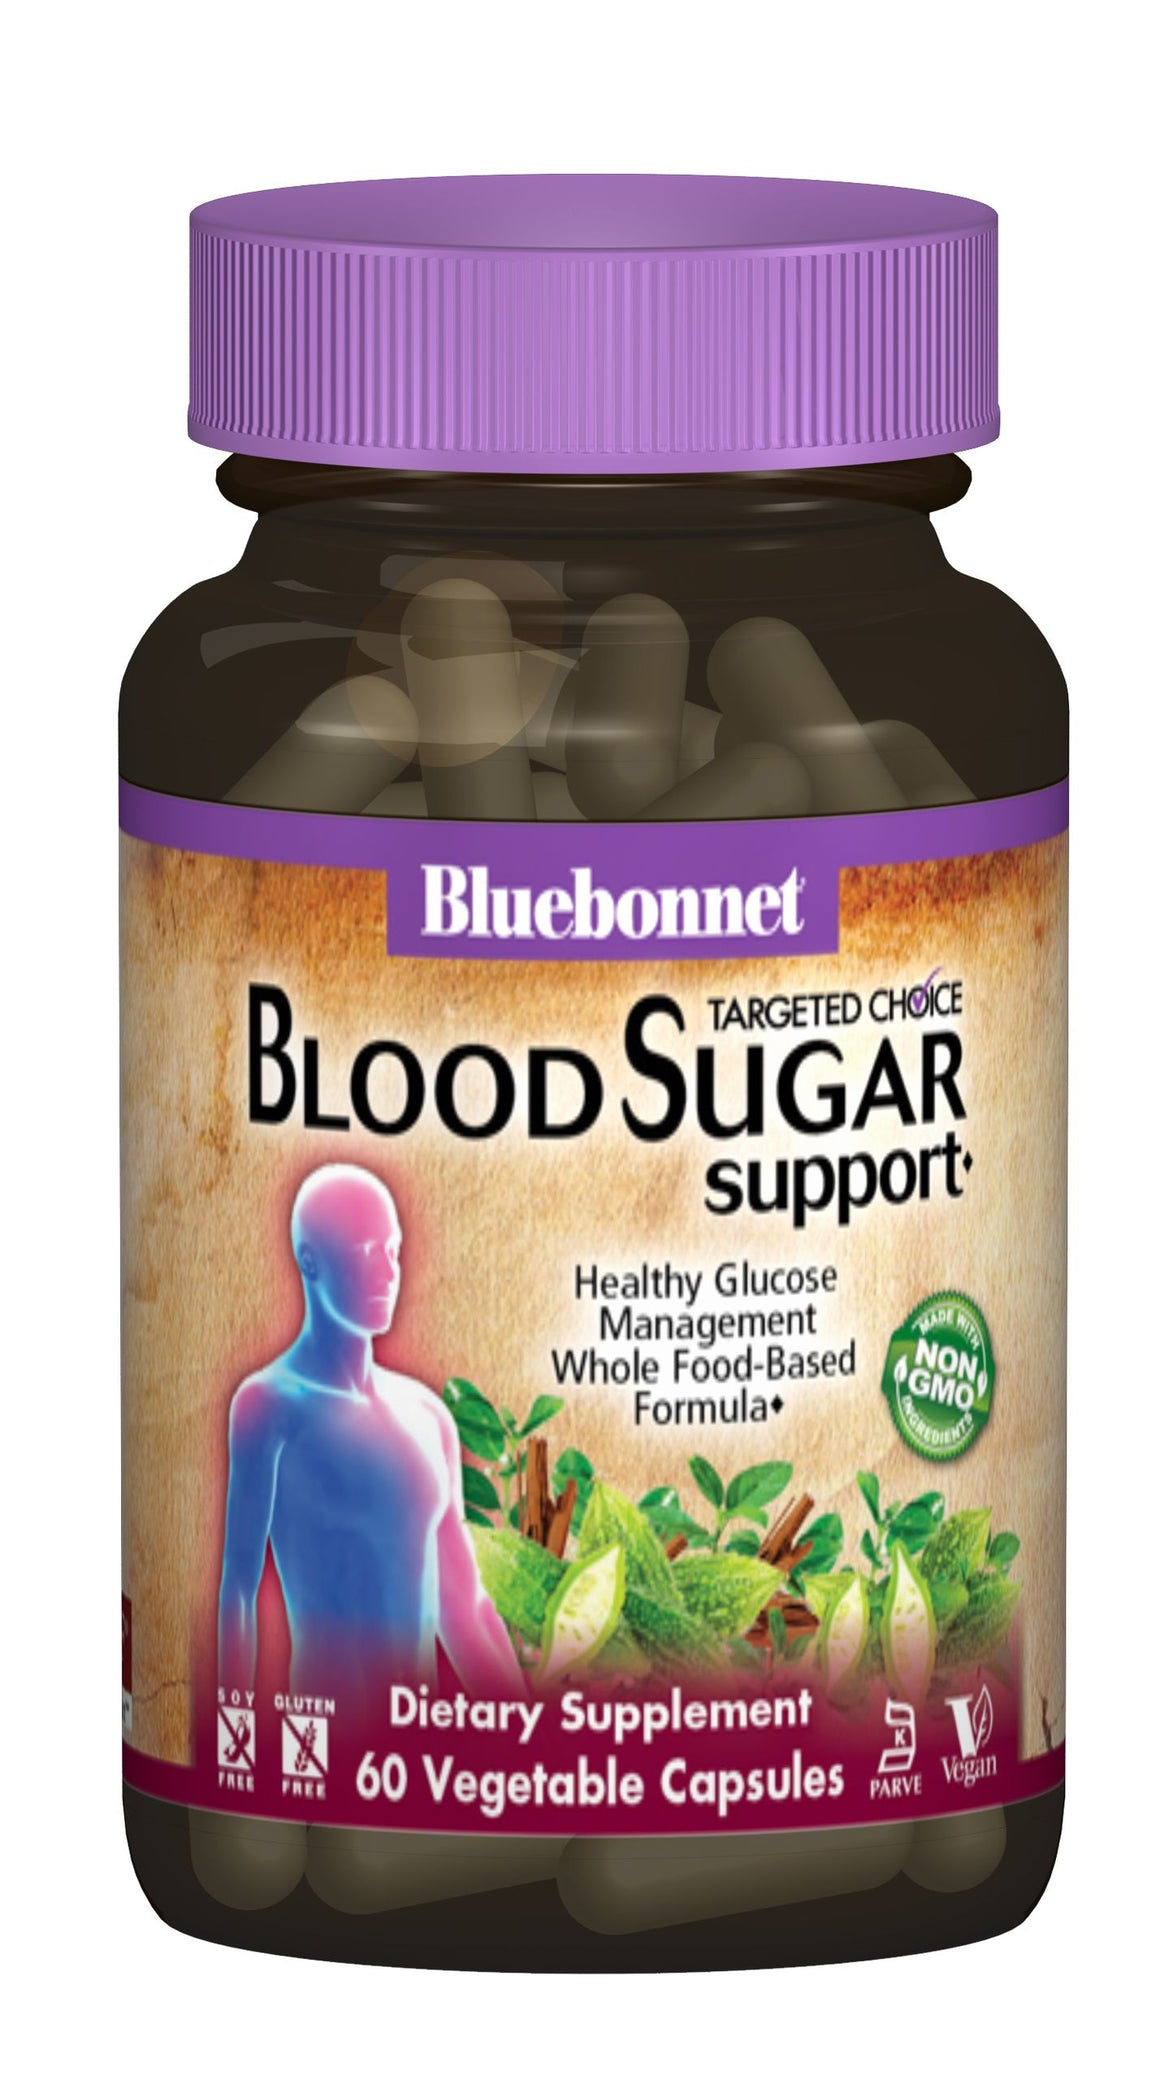 A bottle of Bluebonnet Targeted Choice® Blood Sugar Support